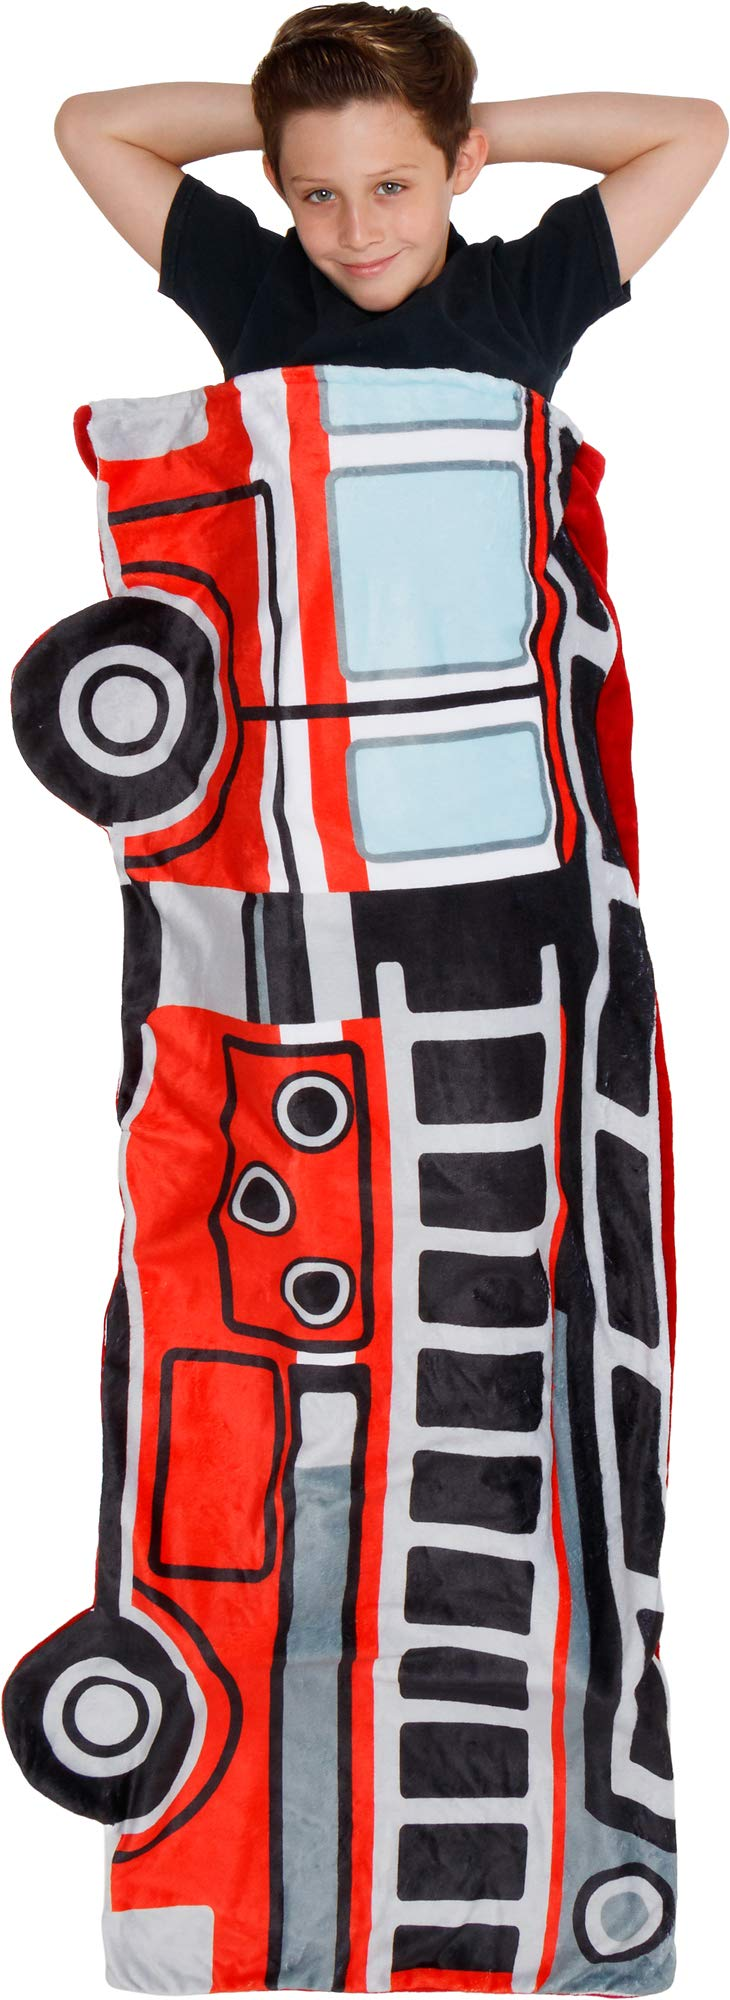 Silver Lilly Fire Truck Sleep Sack - Novelty Wearable Rescue Vehicle Shaped Sleeping Bag Blanket for Kids by Silver Lilly